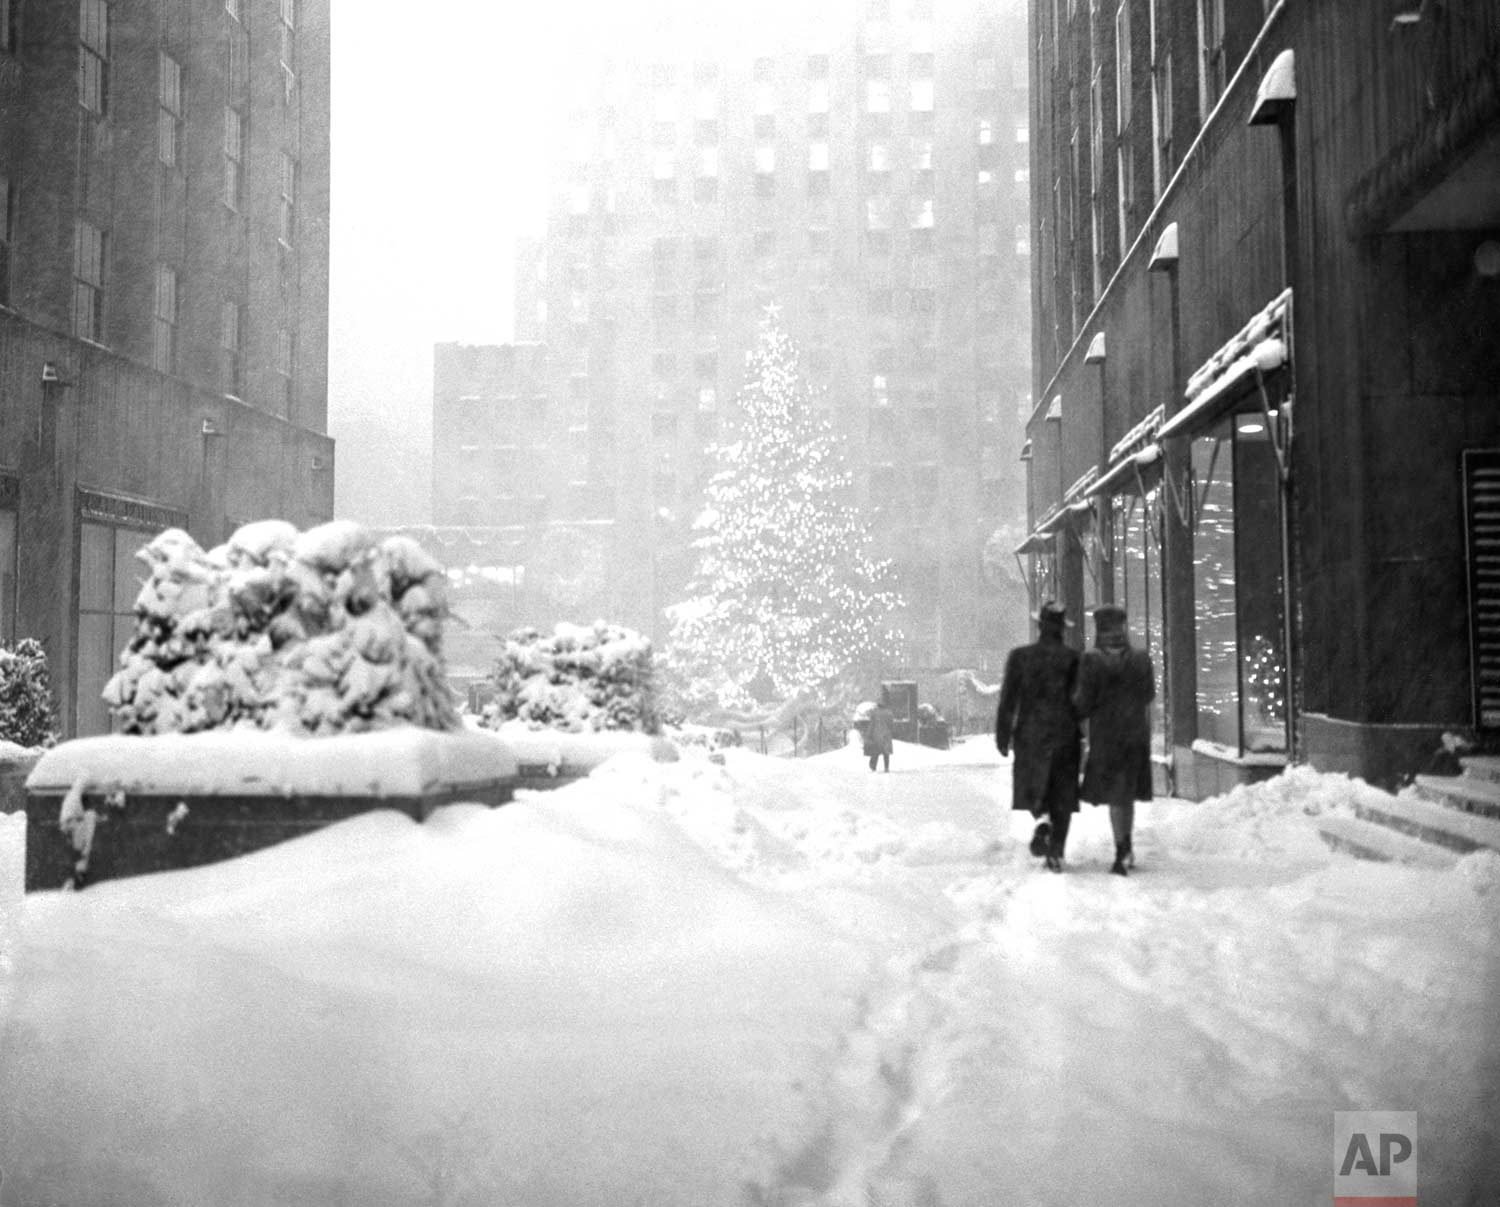 The landmark Christmas tree at New York's Rockefeller Plaza stands out Dec. 26, 1947 as a few hardy pedestrians make their way through the snow drifts of one of the heaviest winter storms in years. (AP Photo/Harry Harris)